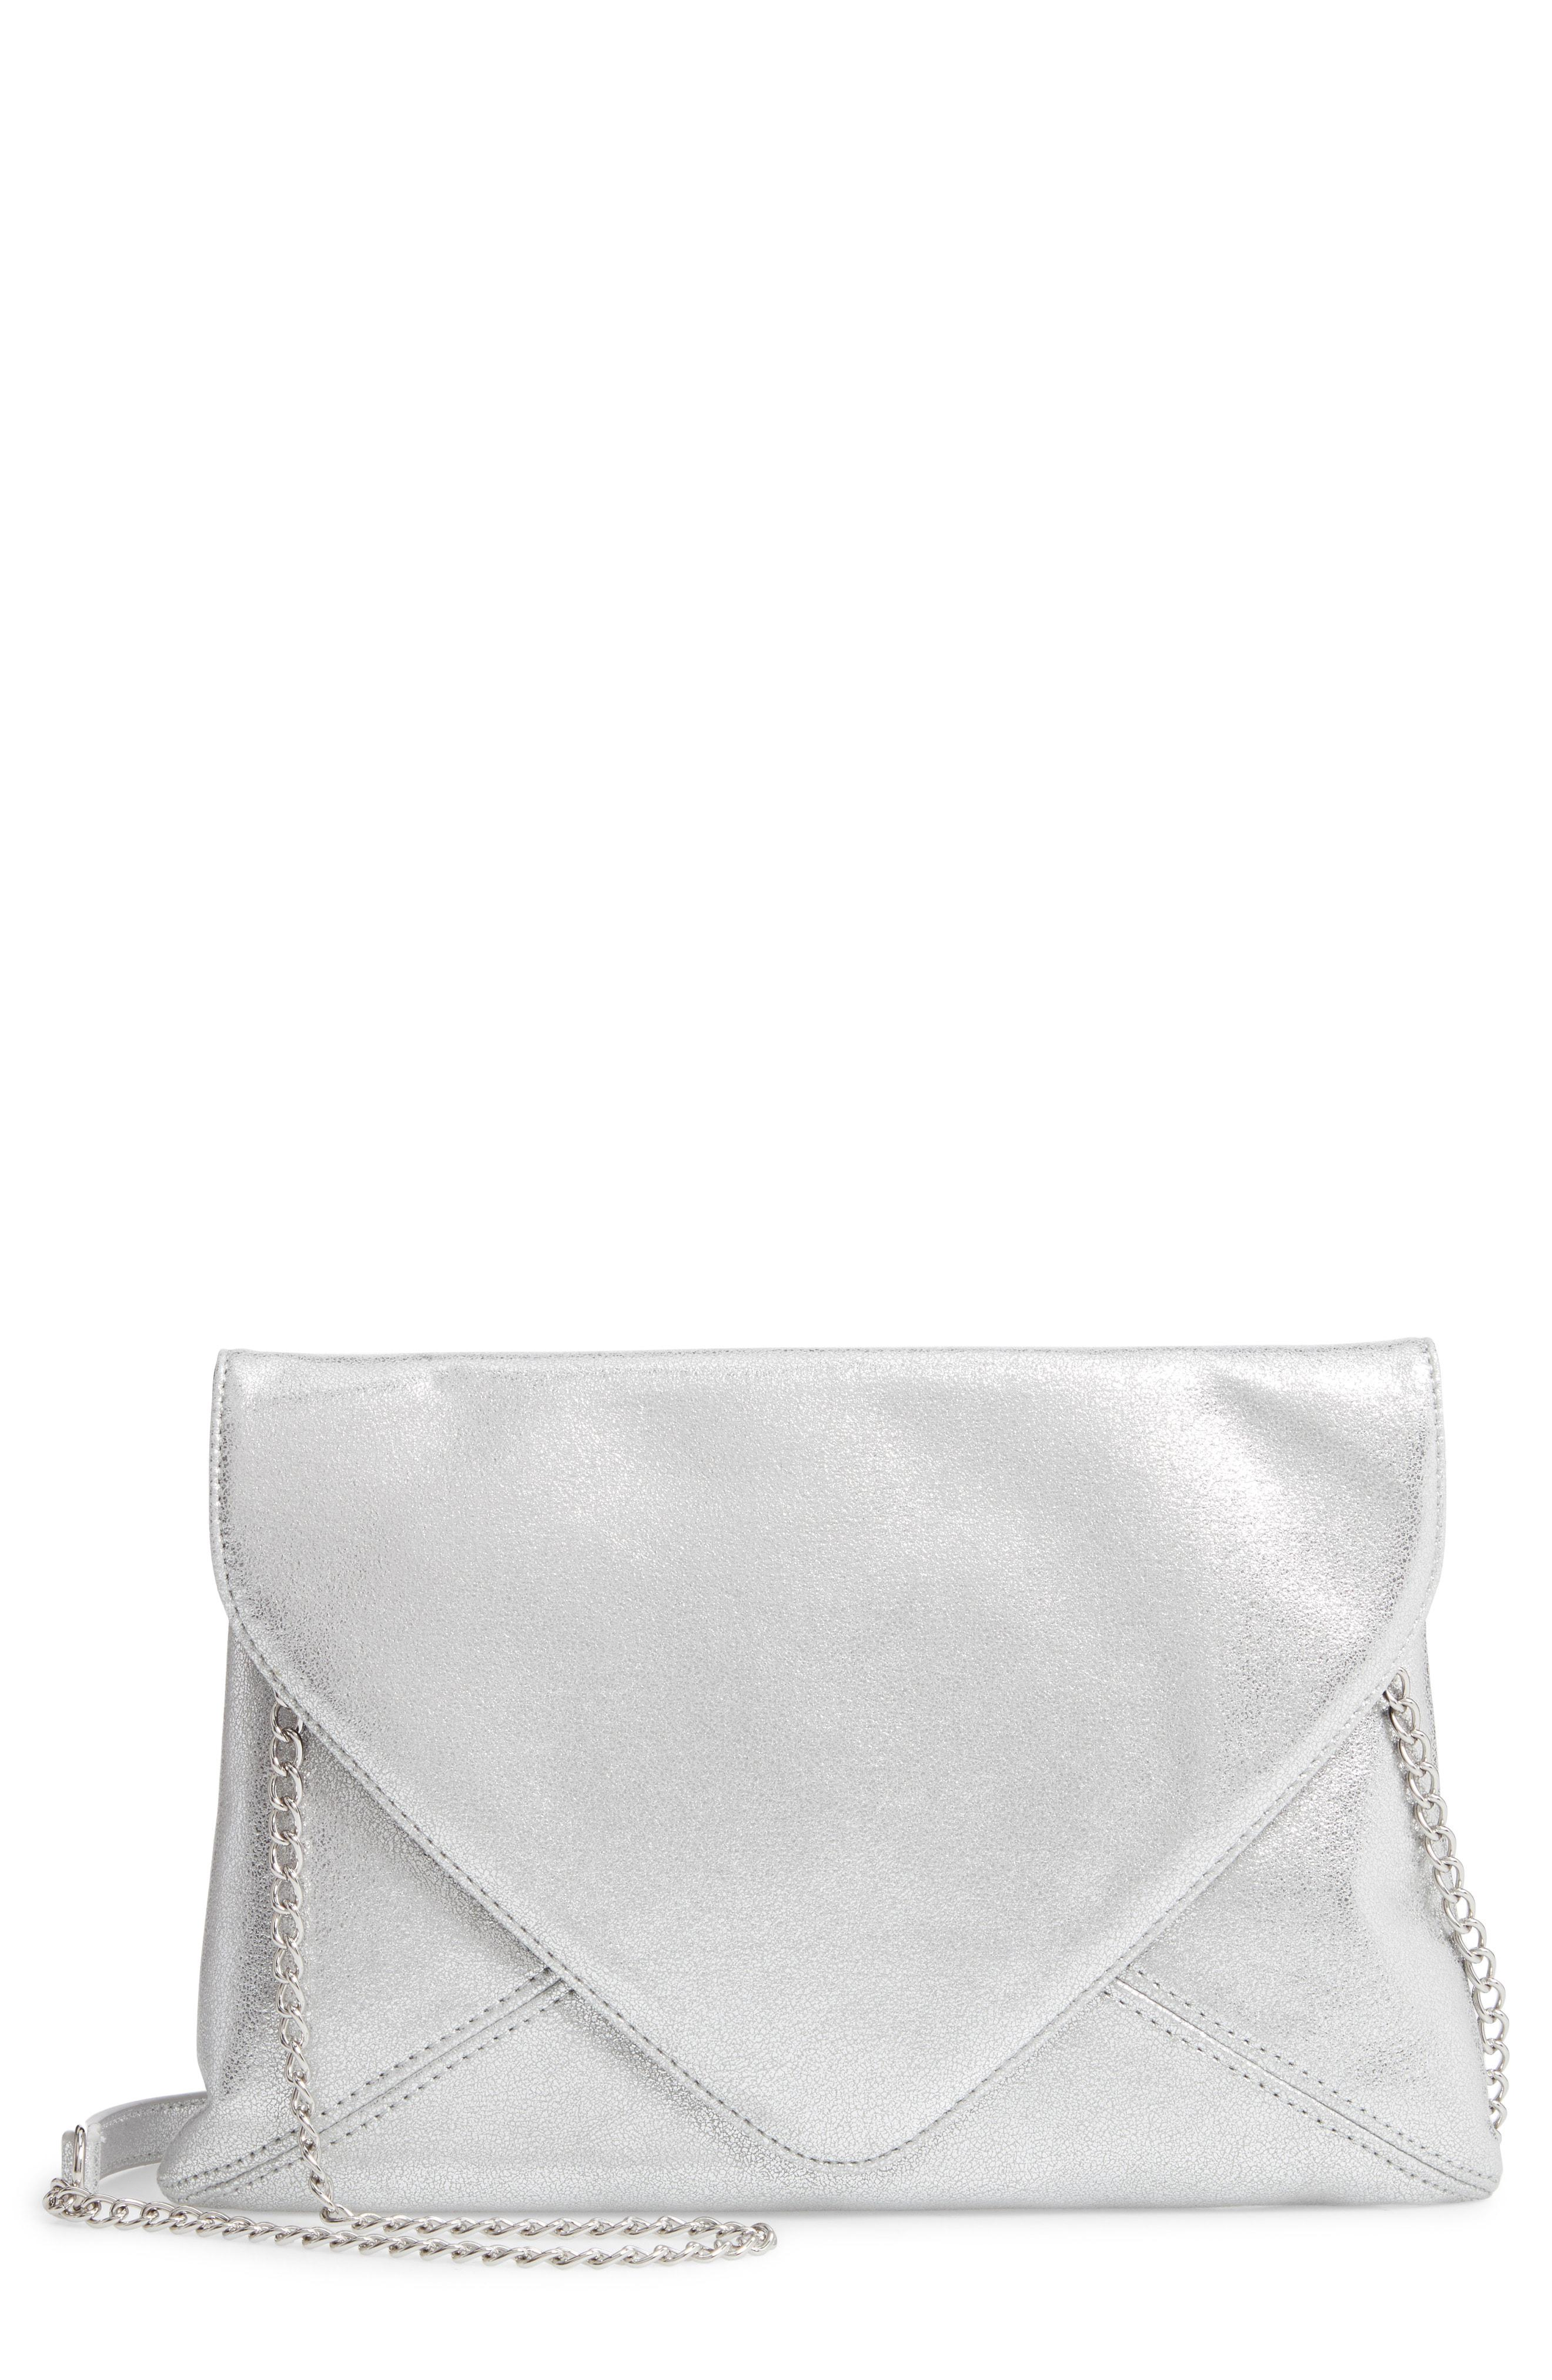 cbe79be681 Lyst - Trouvé Jade Envelope Clutch - Metallic in Metallic